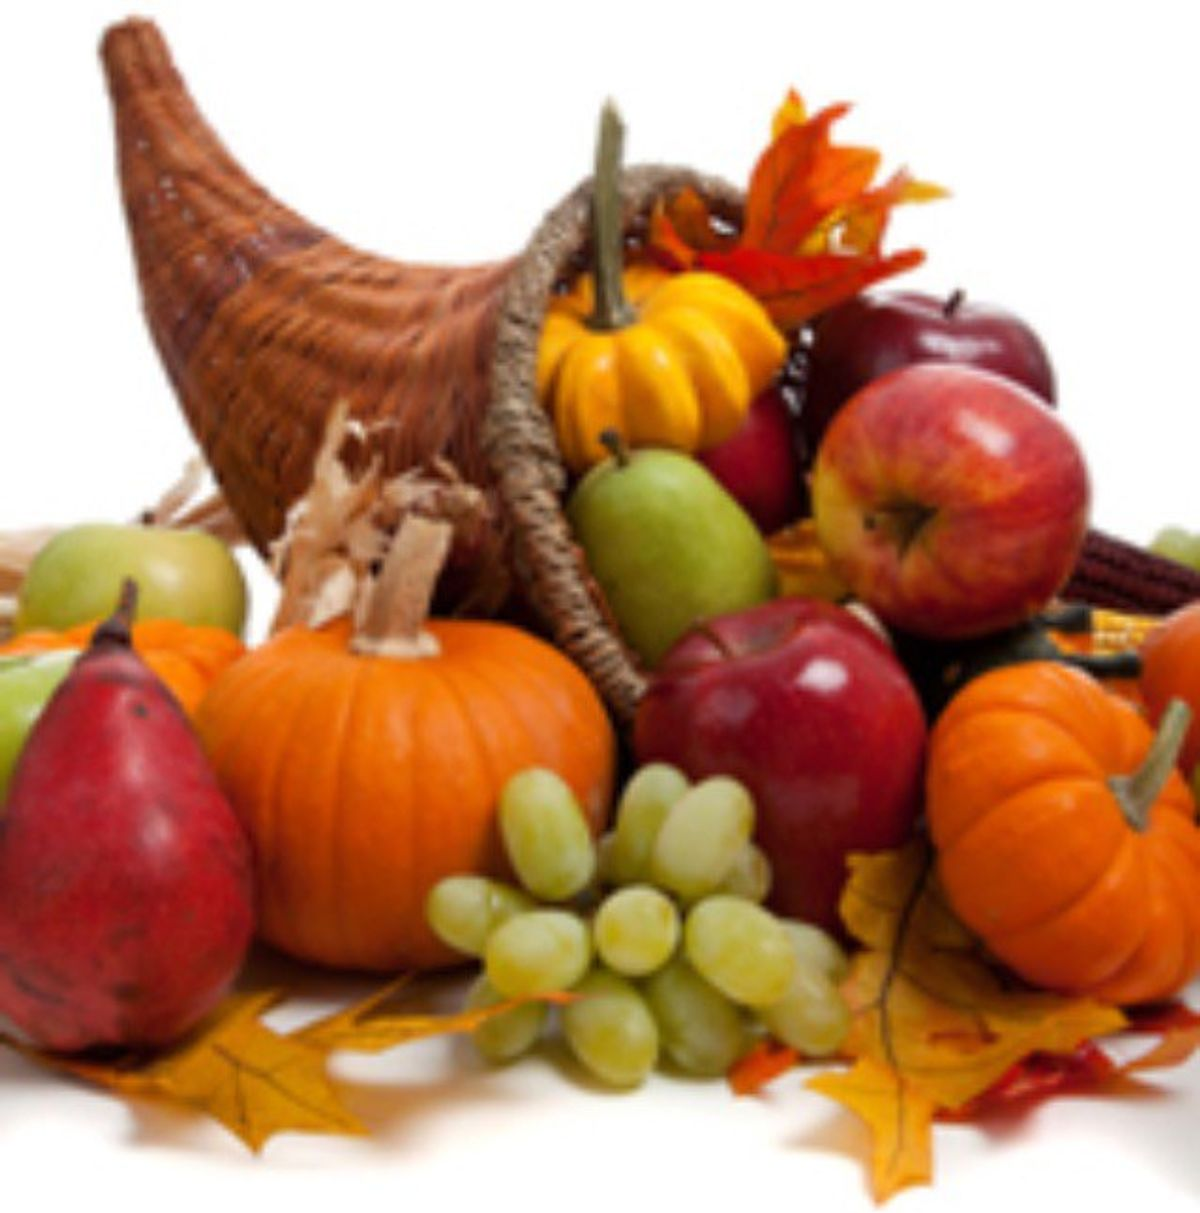 5 Great Fall Foods